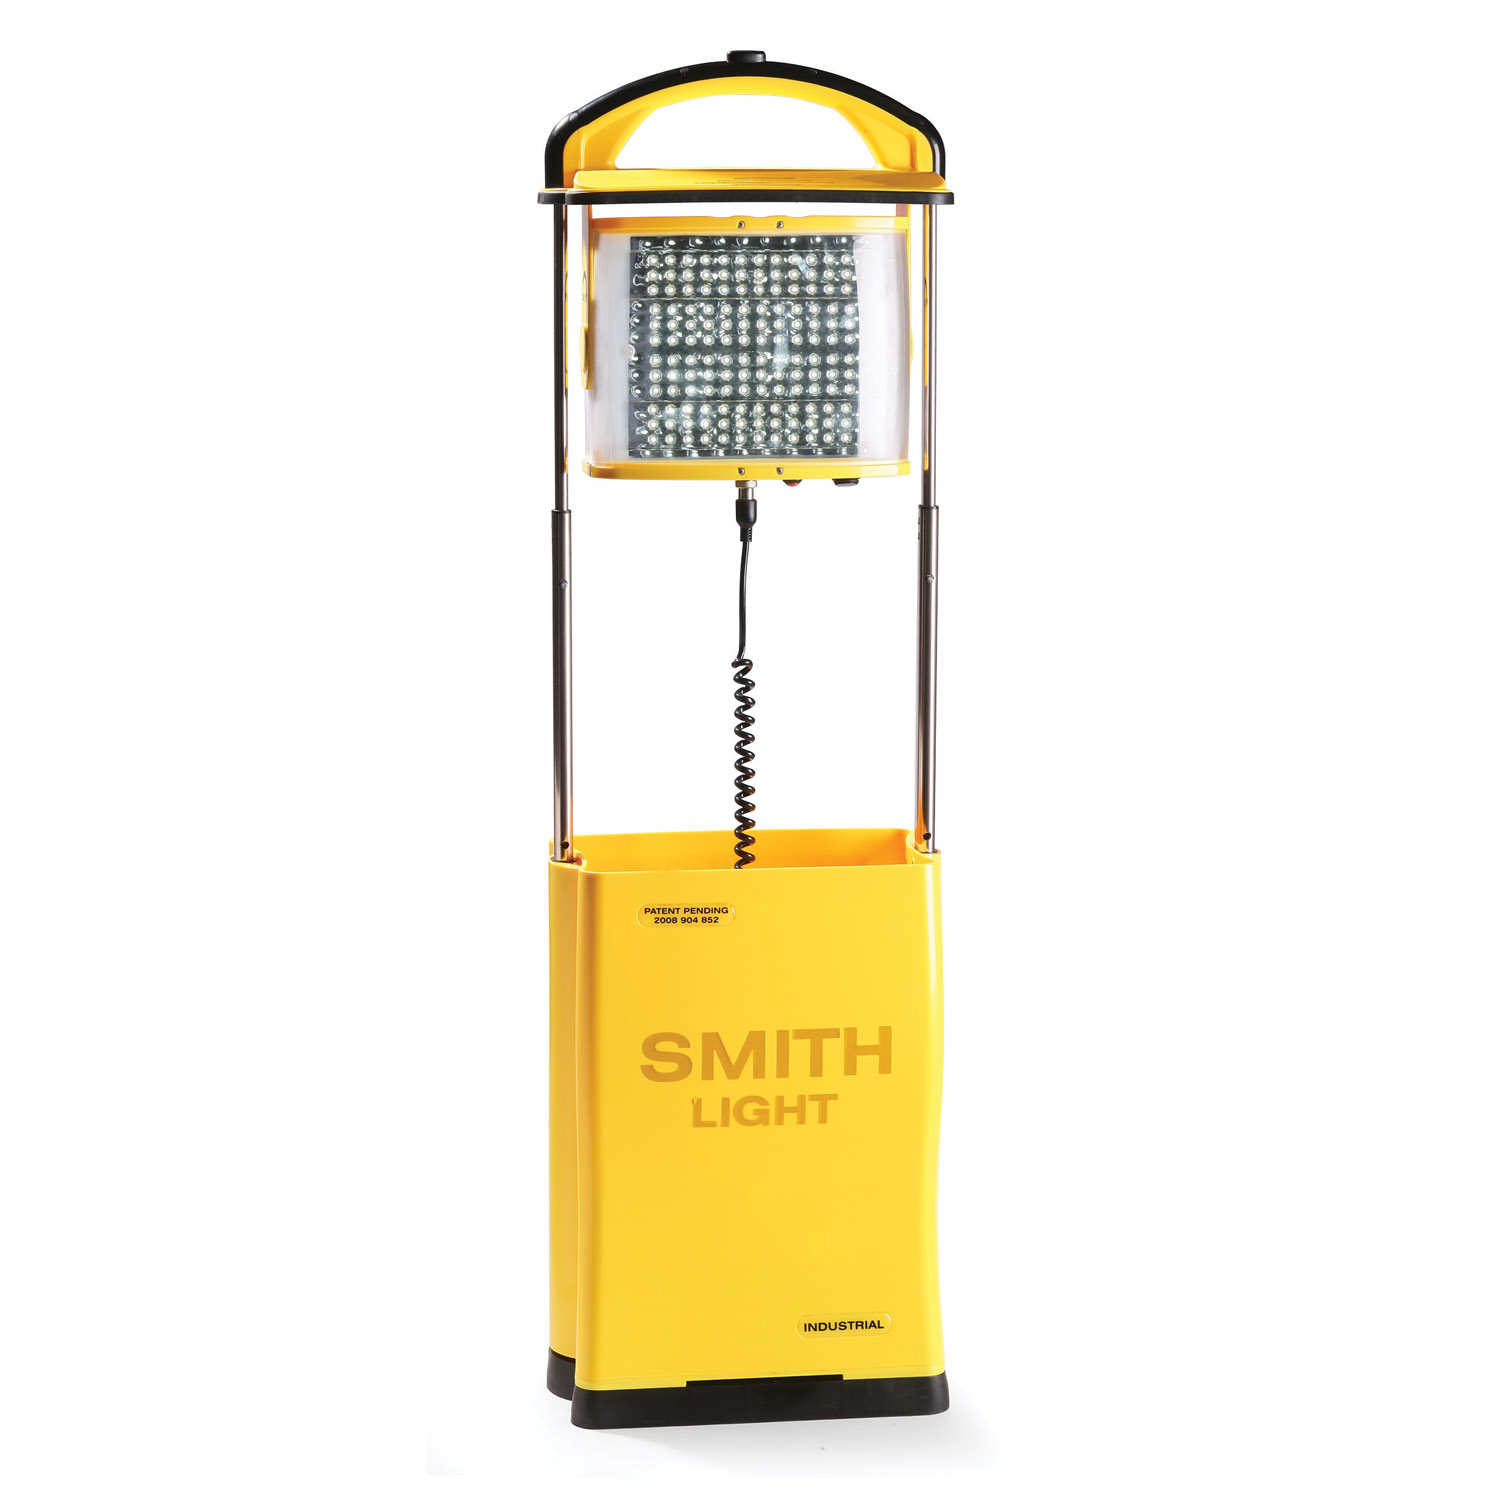 Smith Light High Output LED Work Light